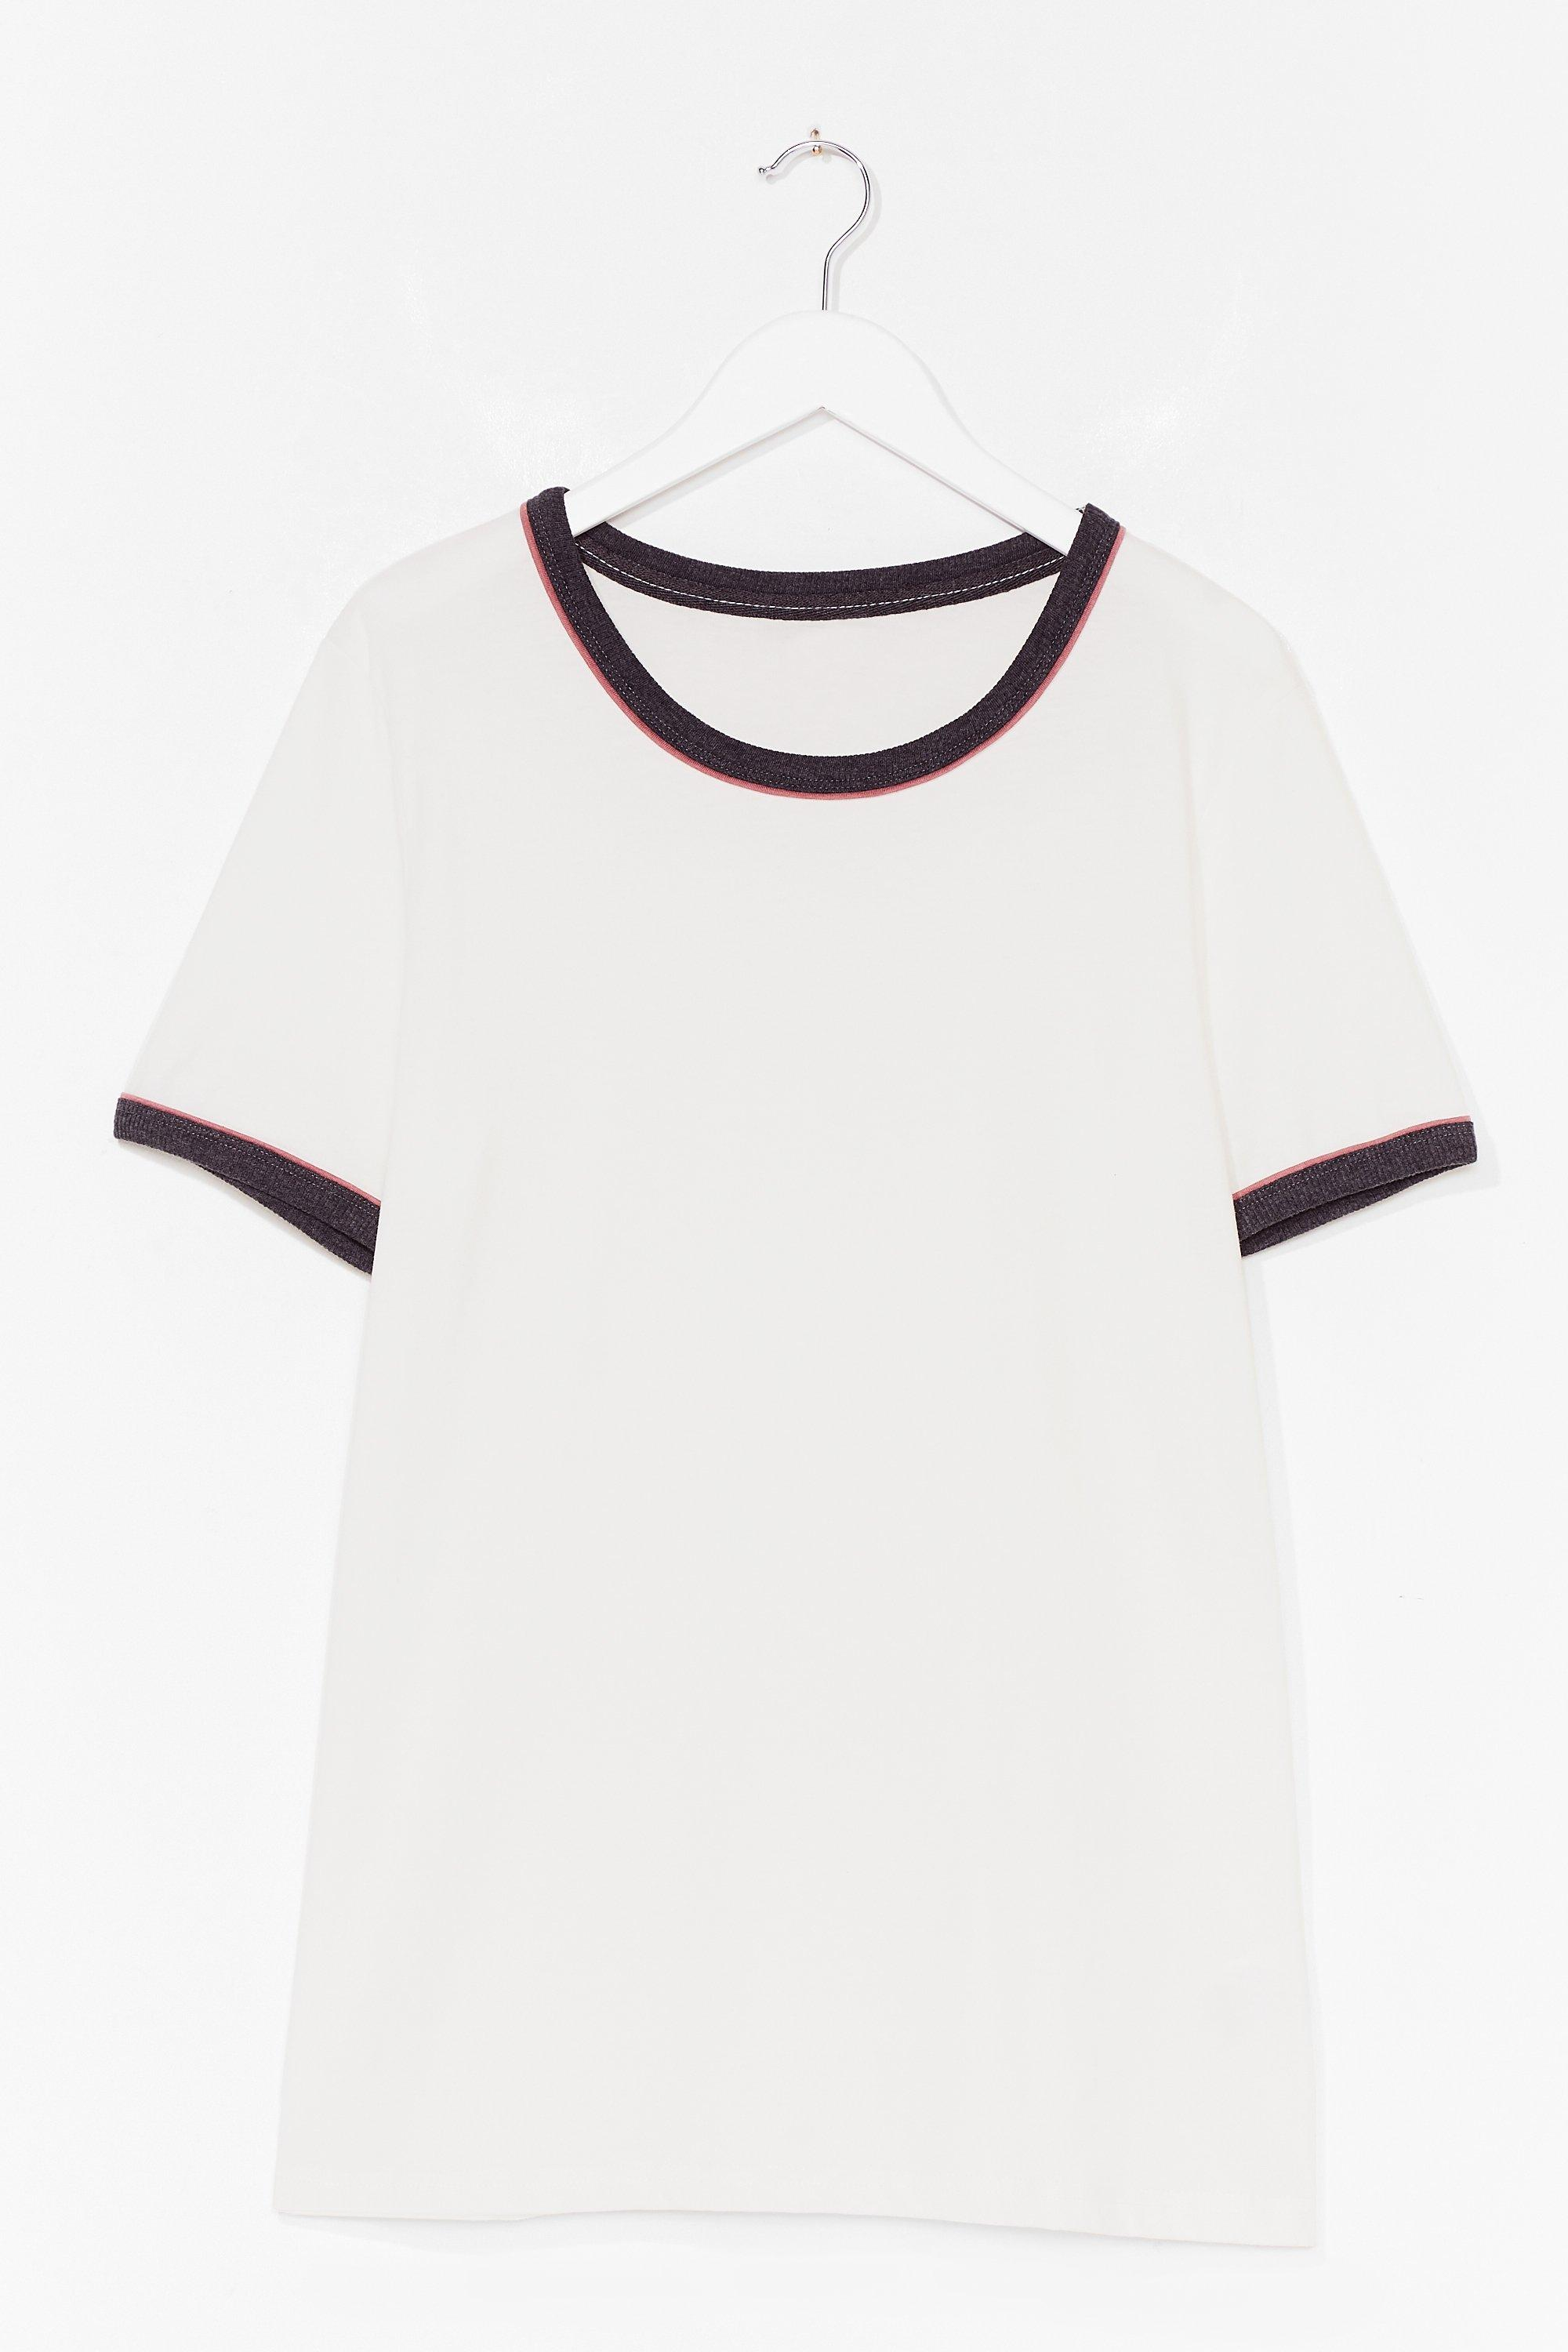 Ringer You Up Plus Contrast Tee 2